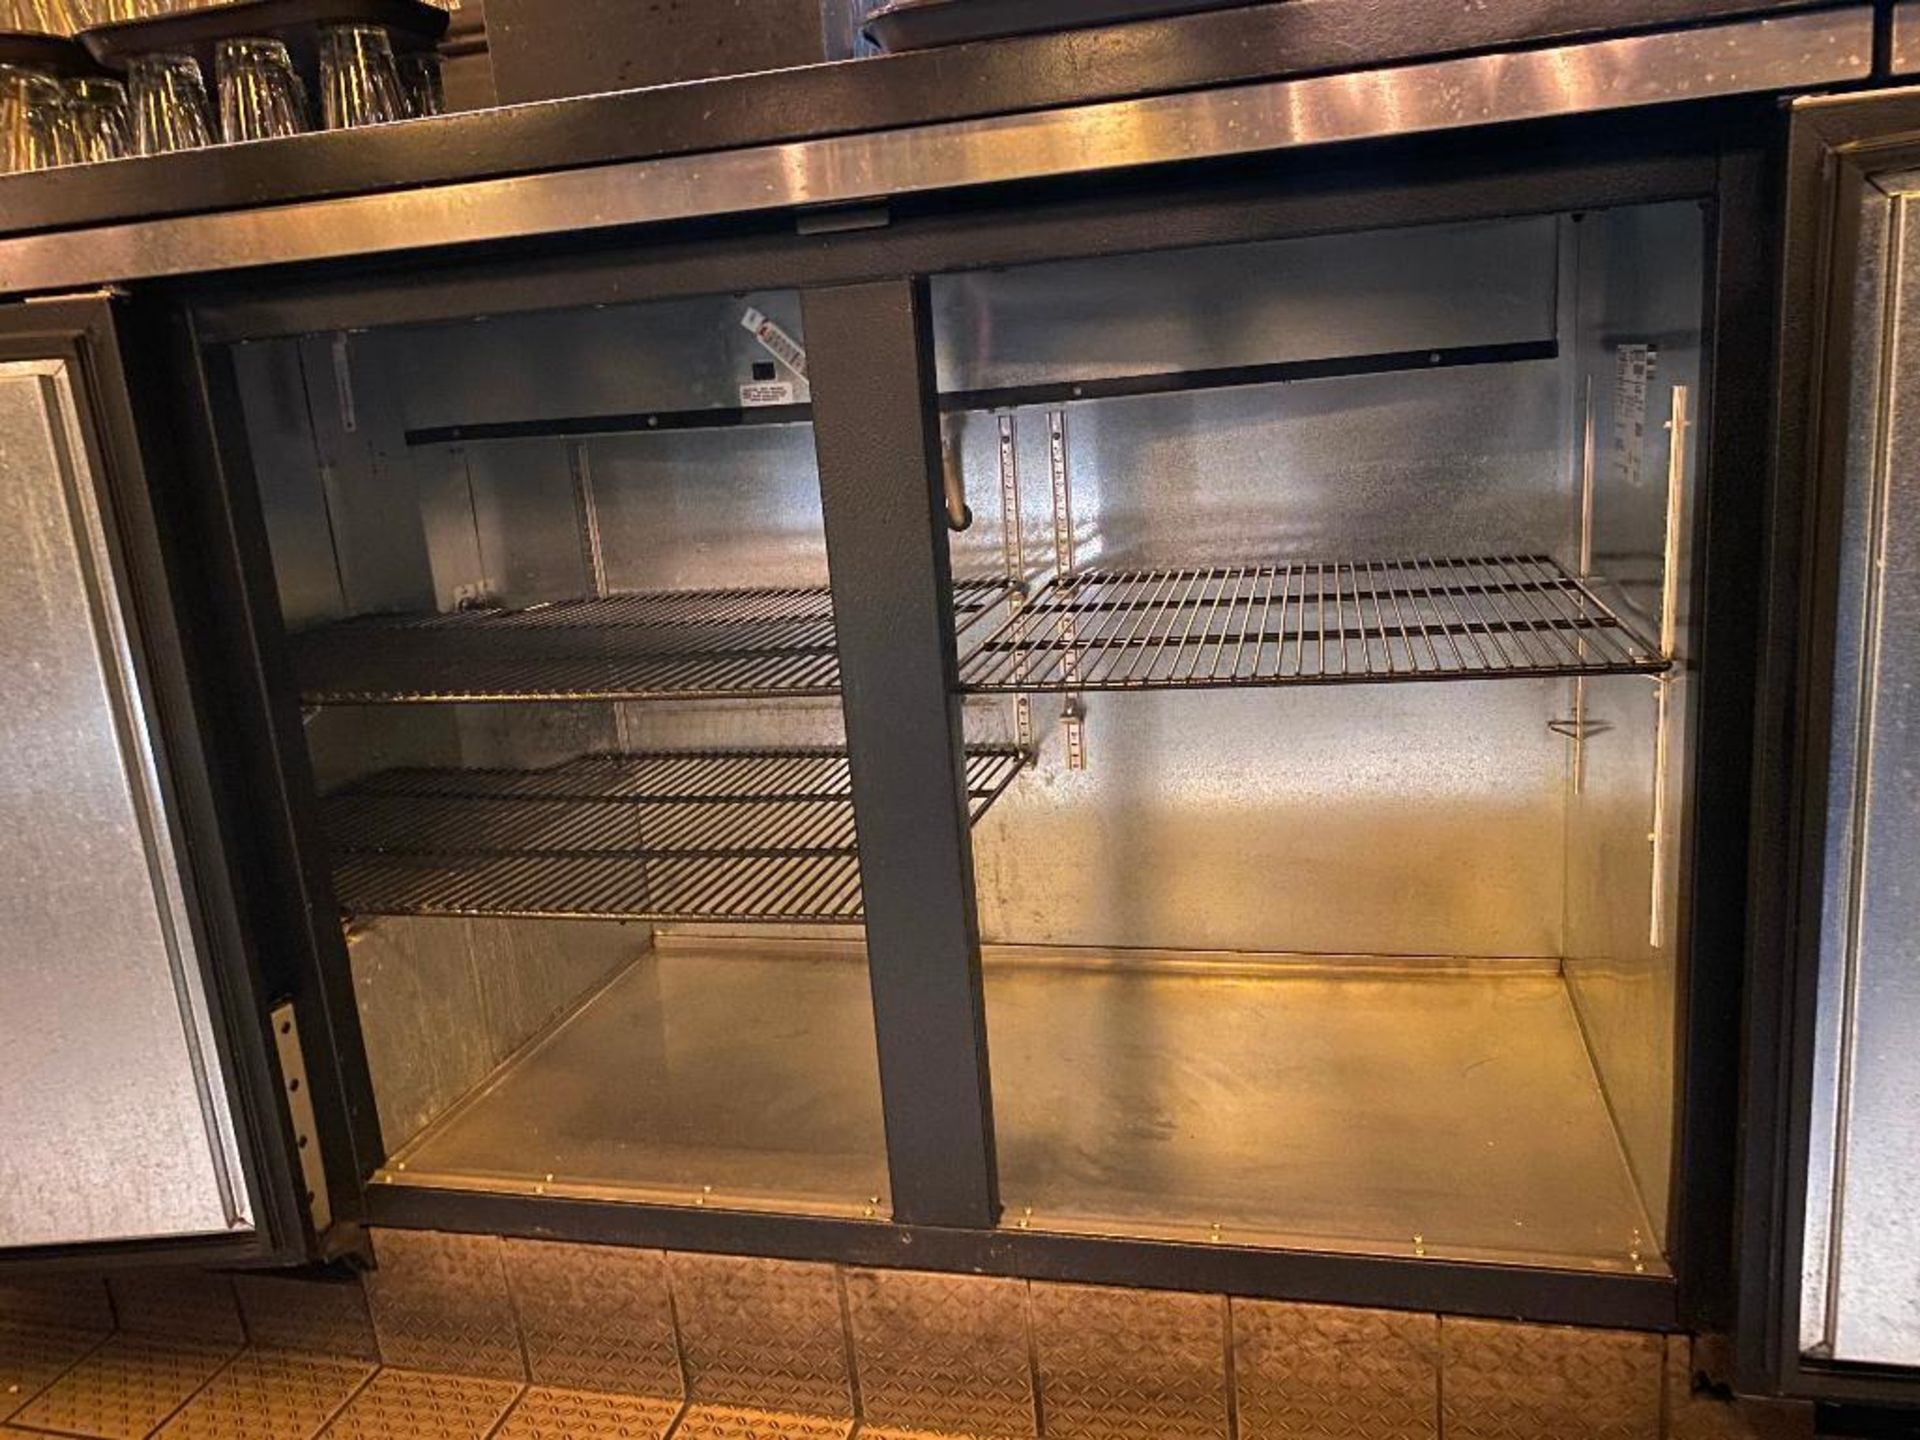 "TRUE TBB-2 59"" 2 DOOR SOLID BACK BAR REFRIGERATOR - NOTE: REQUIRES REMOVAL FROM UNDER BAR, PLEASE IN - Image 3 of 4"